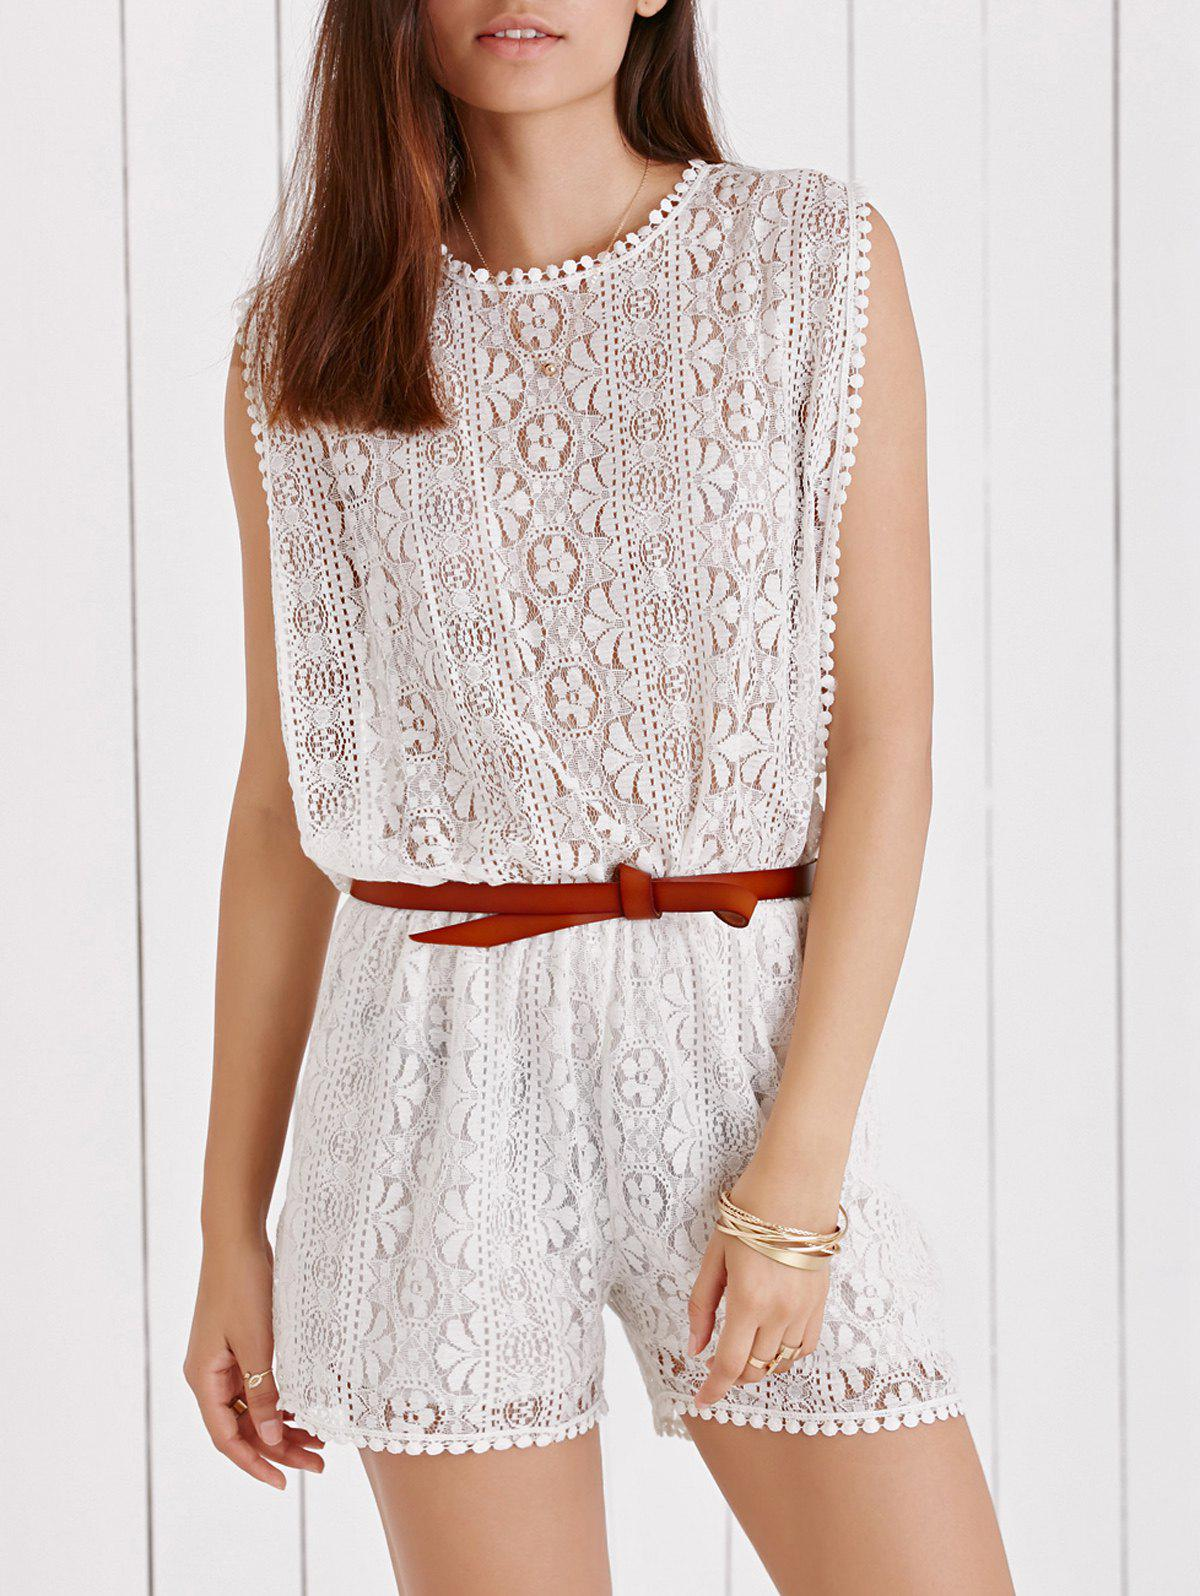 Elegant White Sleeveless Cut Out Side Boob Lace Romper For Women